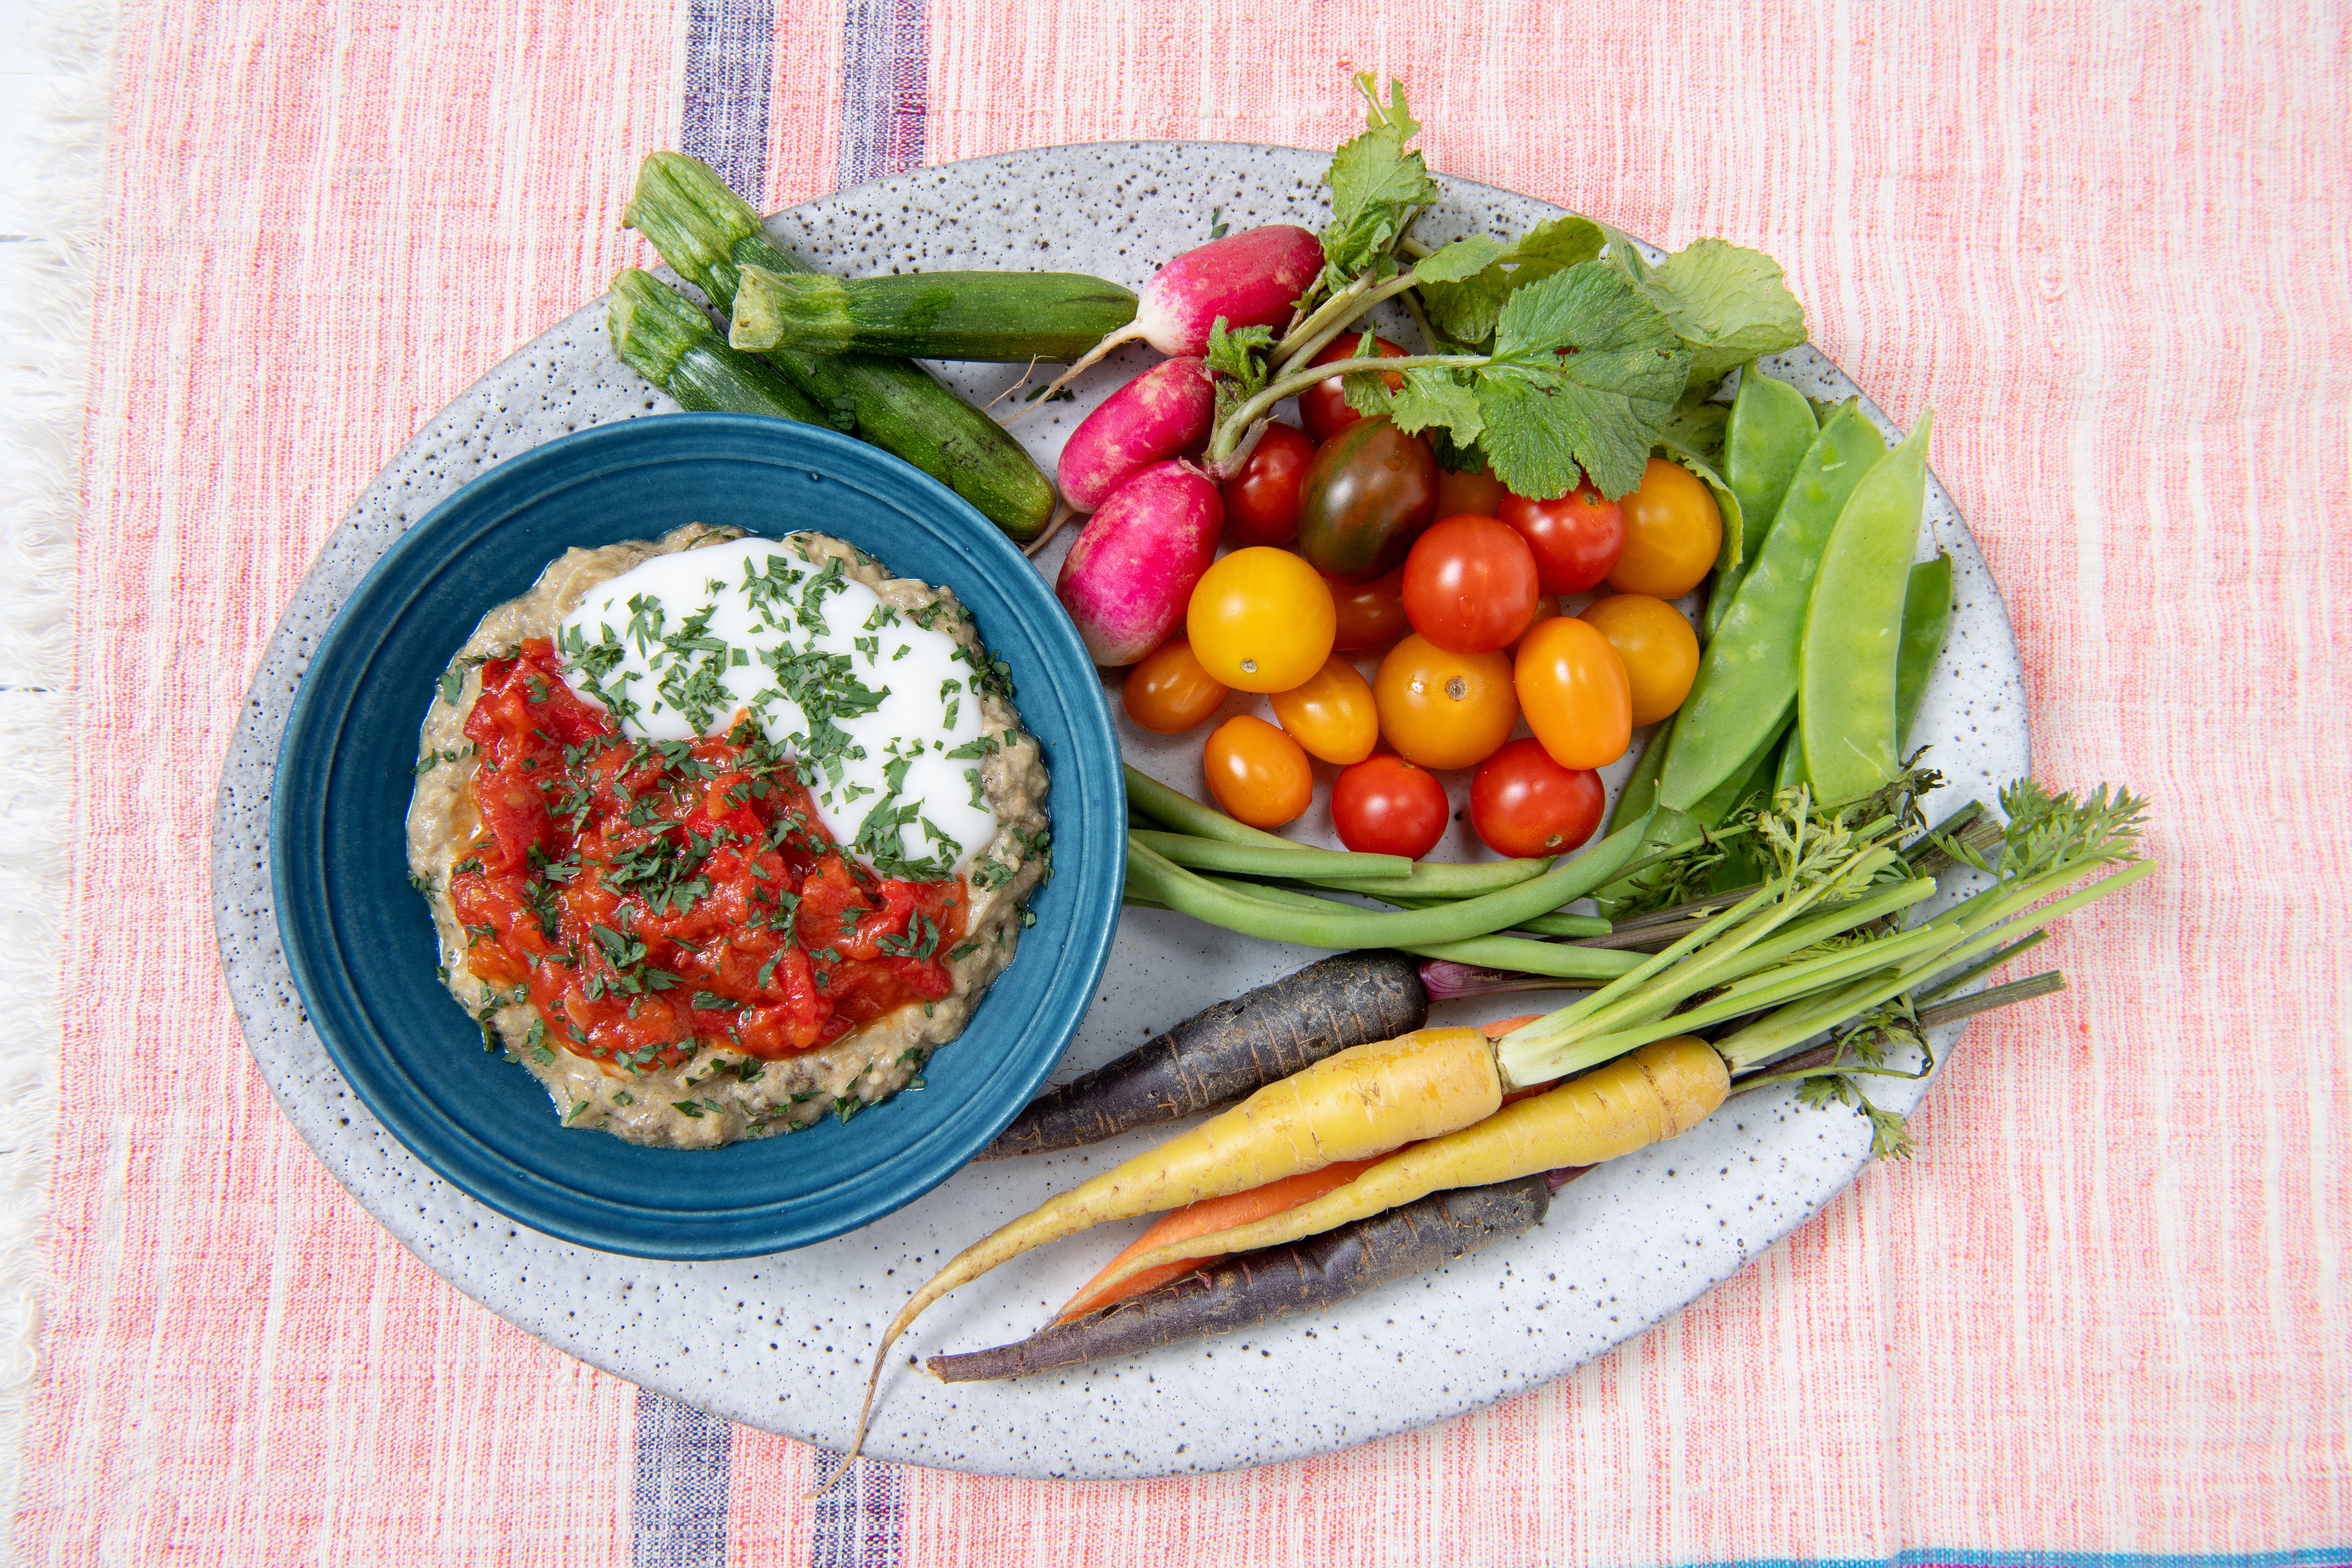 Smoky Eggplant Dip With Ginger and Tomato Chutney